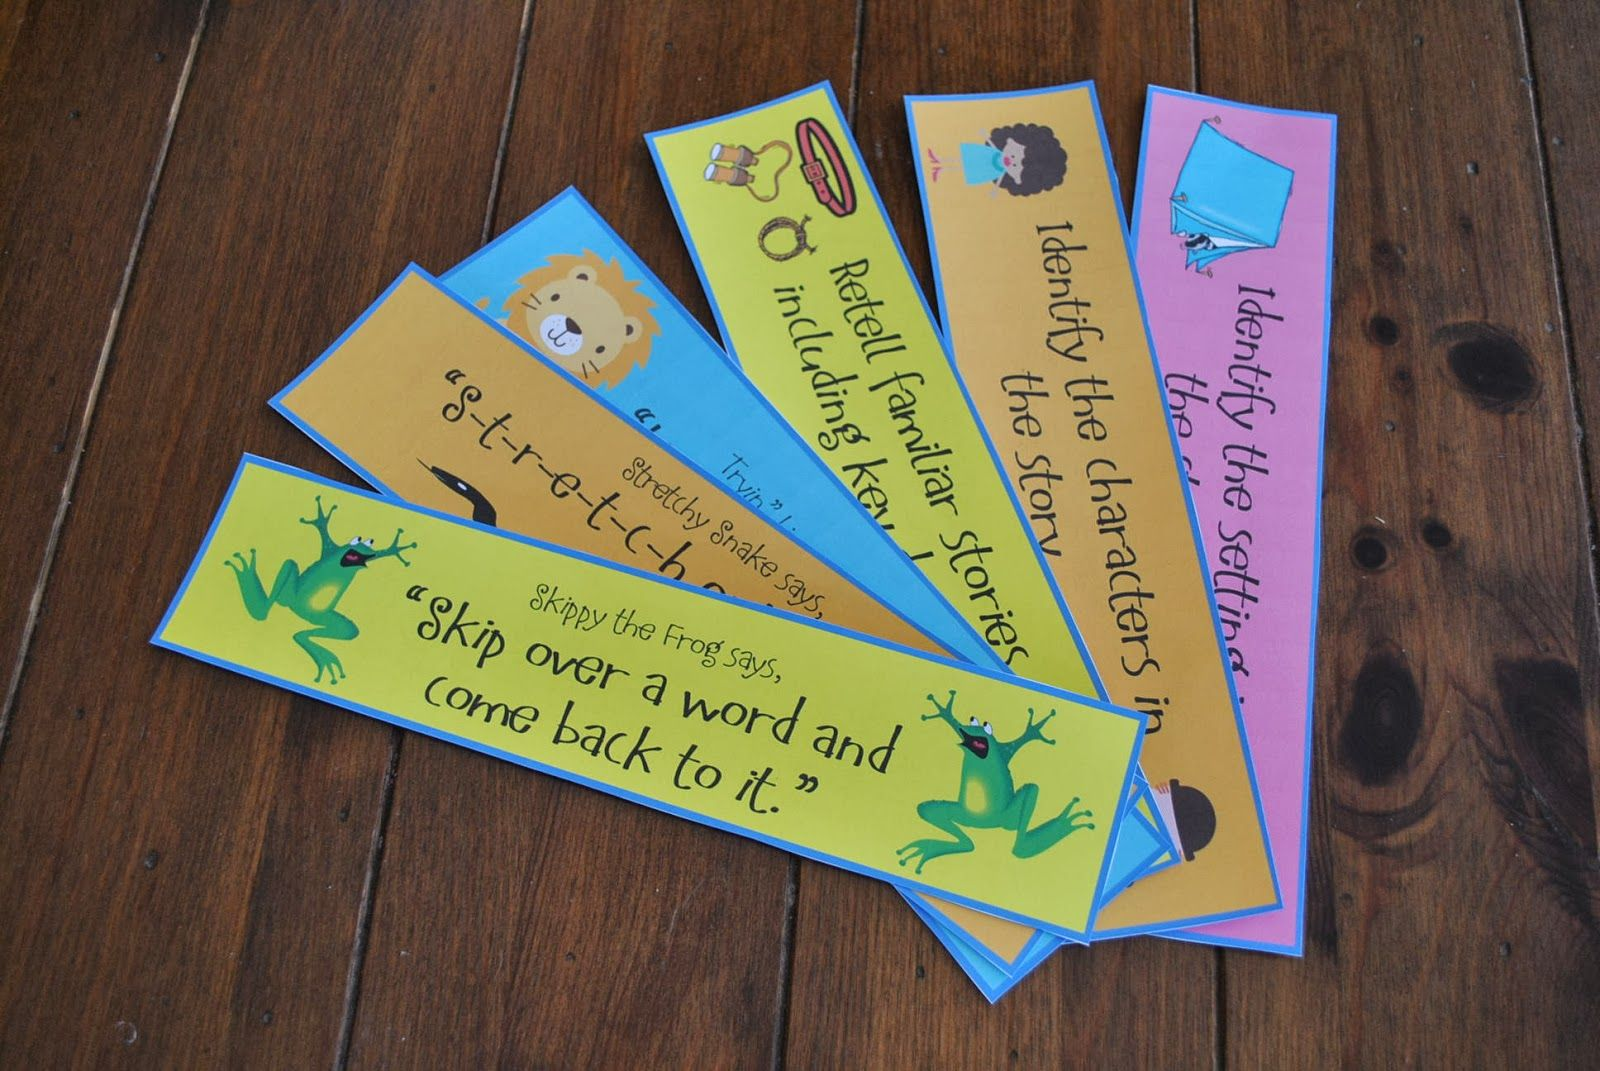 Incredible K Kids: Reading Strategies Bookmarks There's a freebie and a paid product mentioned here...check it out!